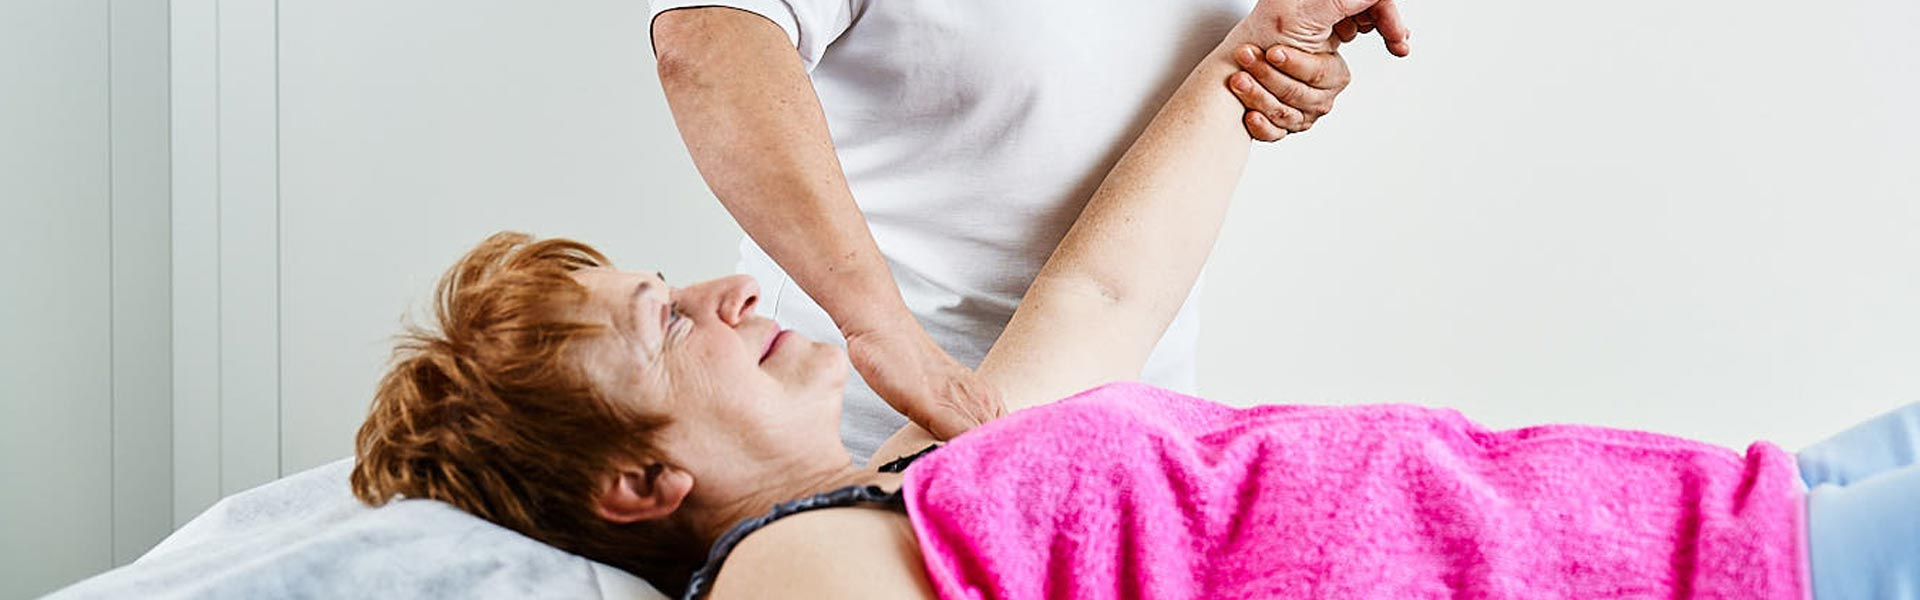 Praxis Fuchs Physiotherapie Osteopathie Manuelle Lymphdrainage